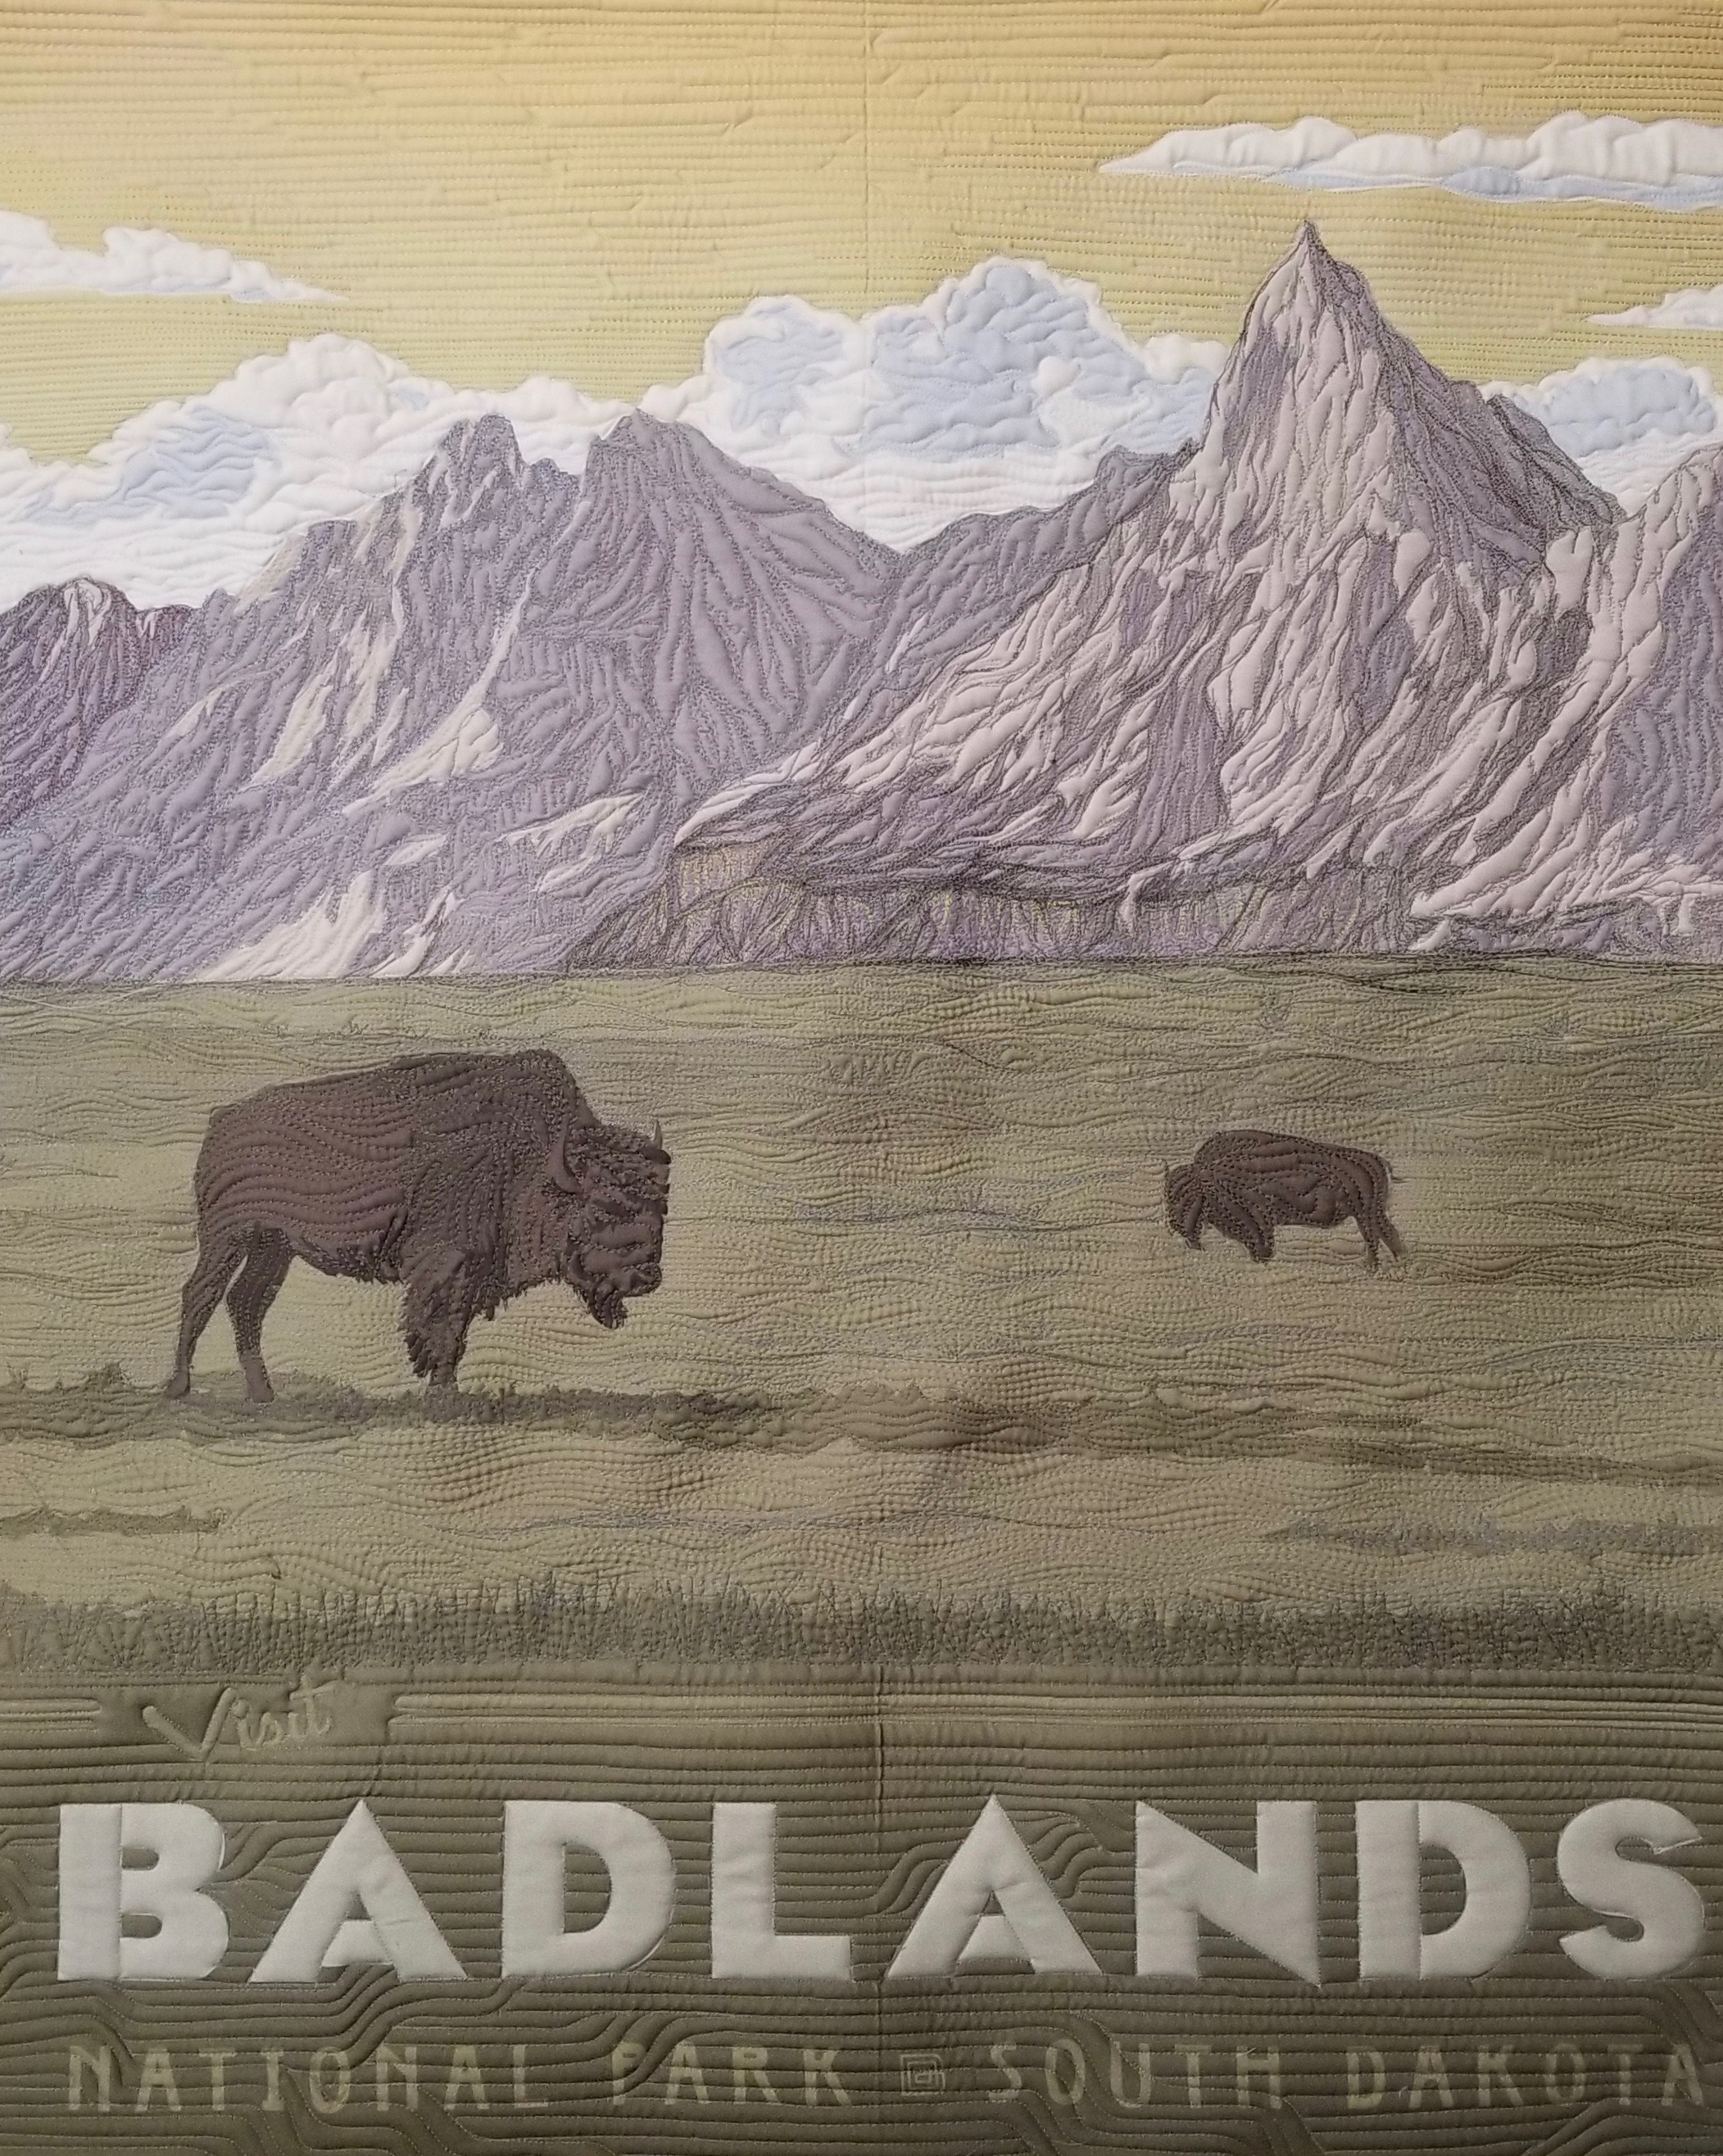 badlands national park fabric panel